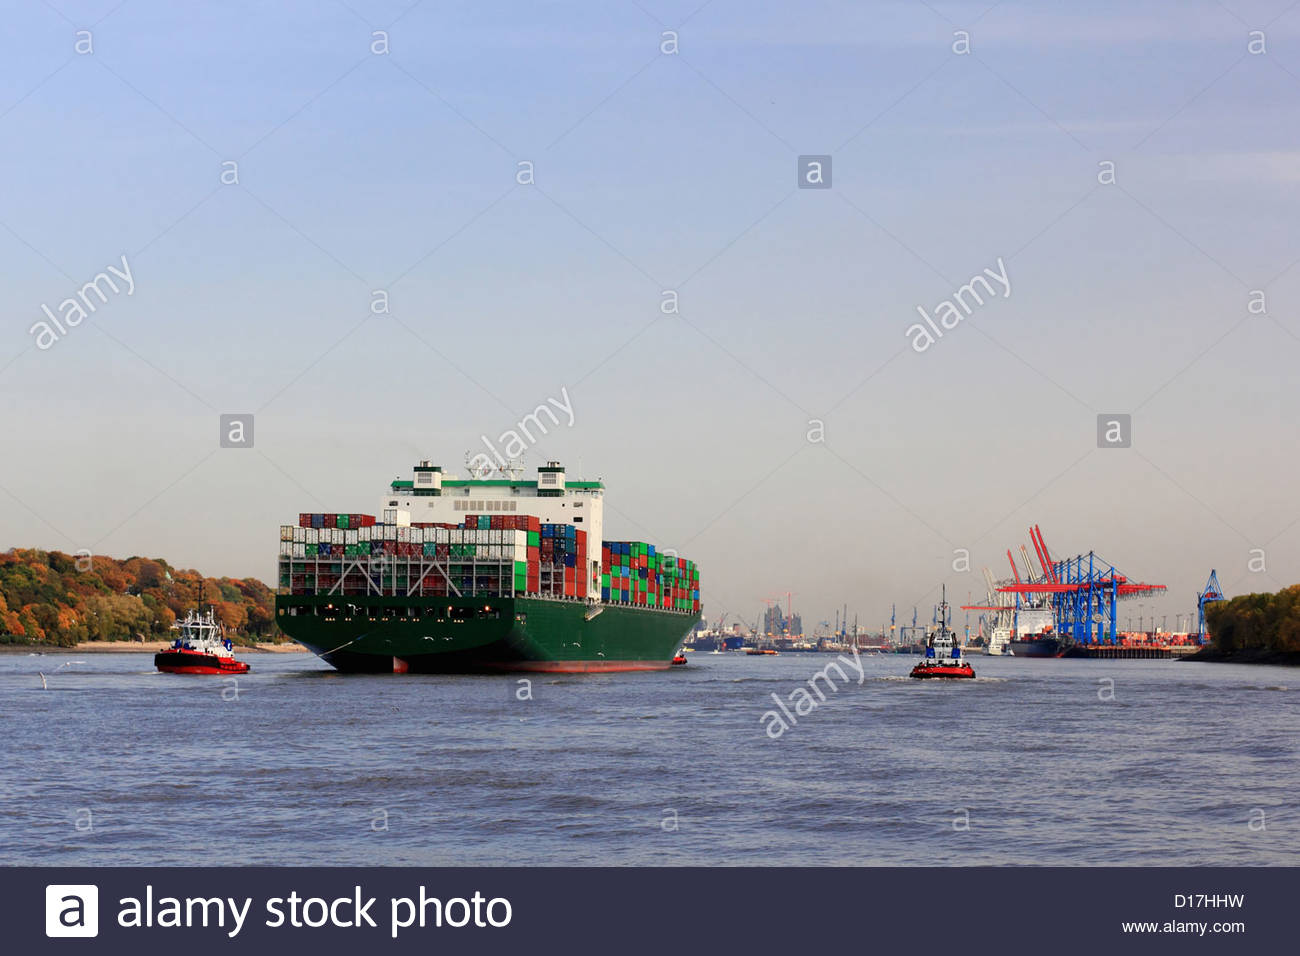 Container ship sailing on river - Stock Image